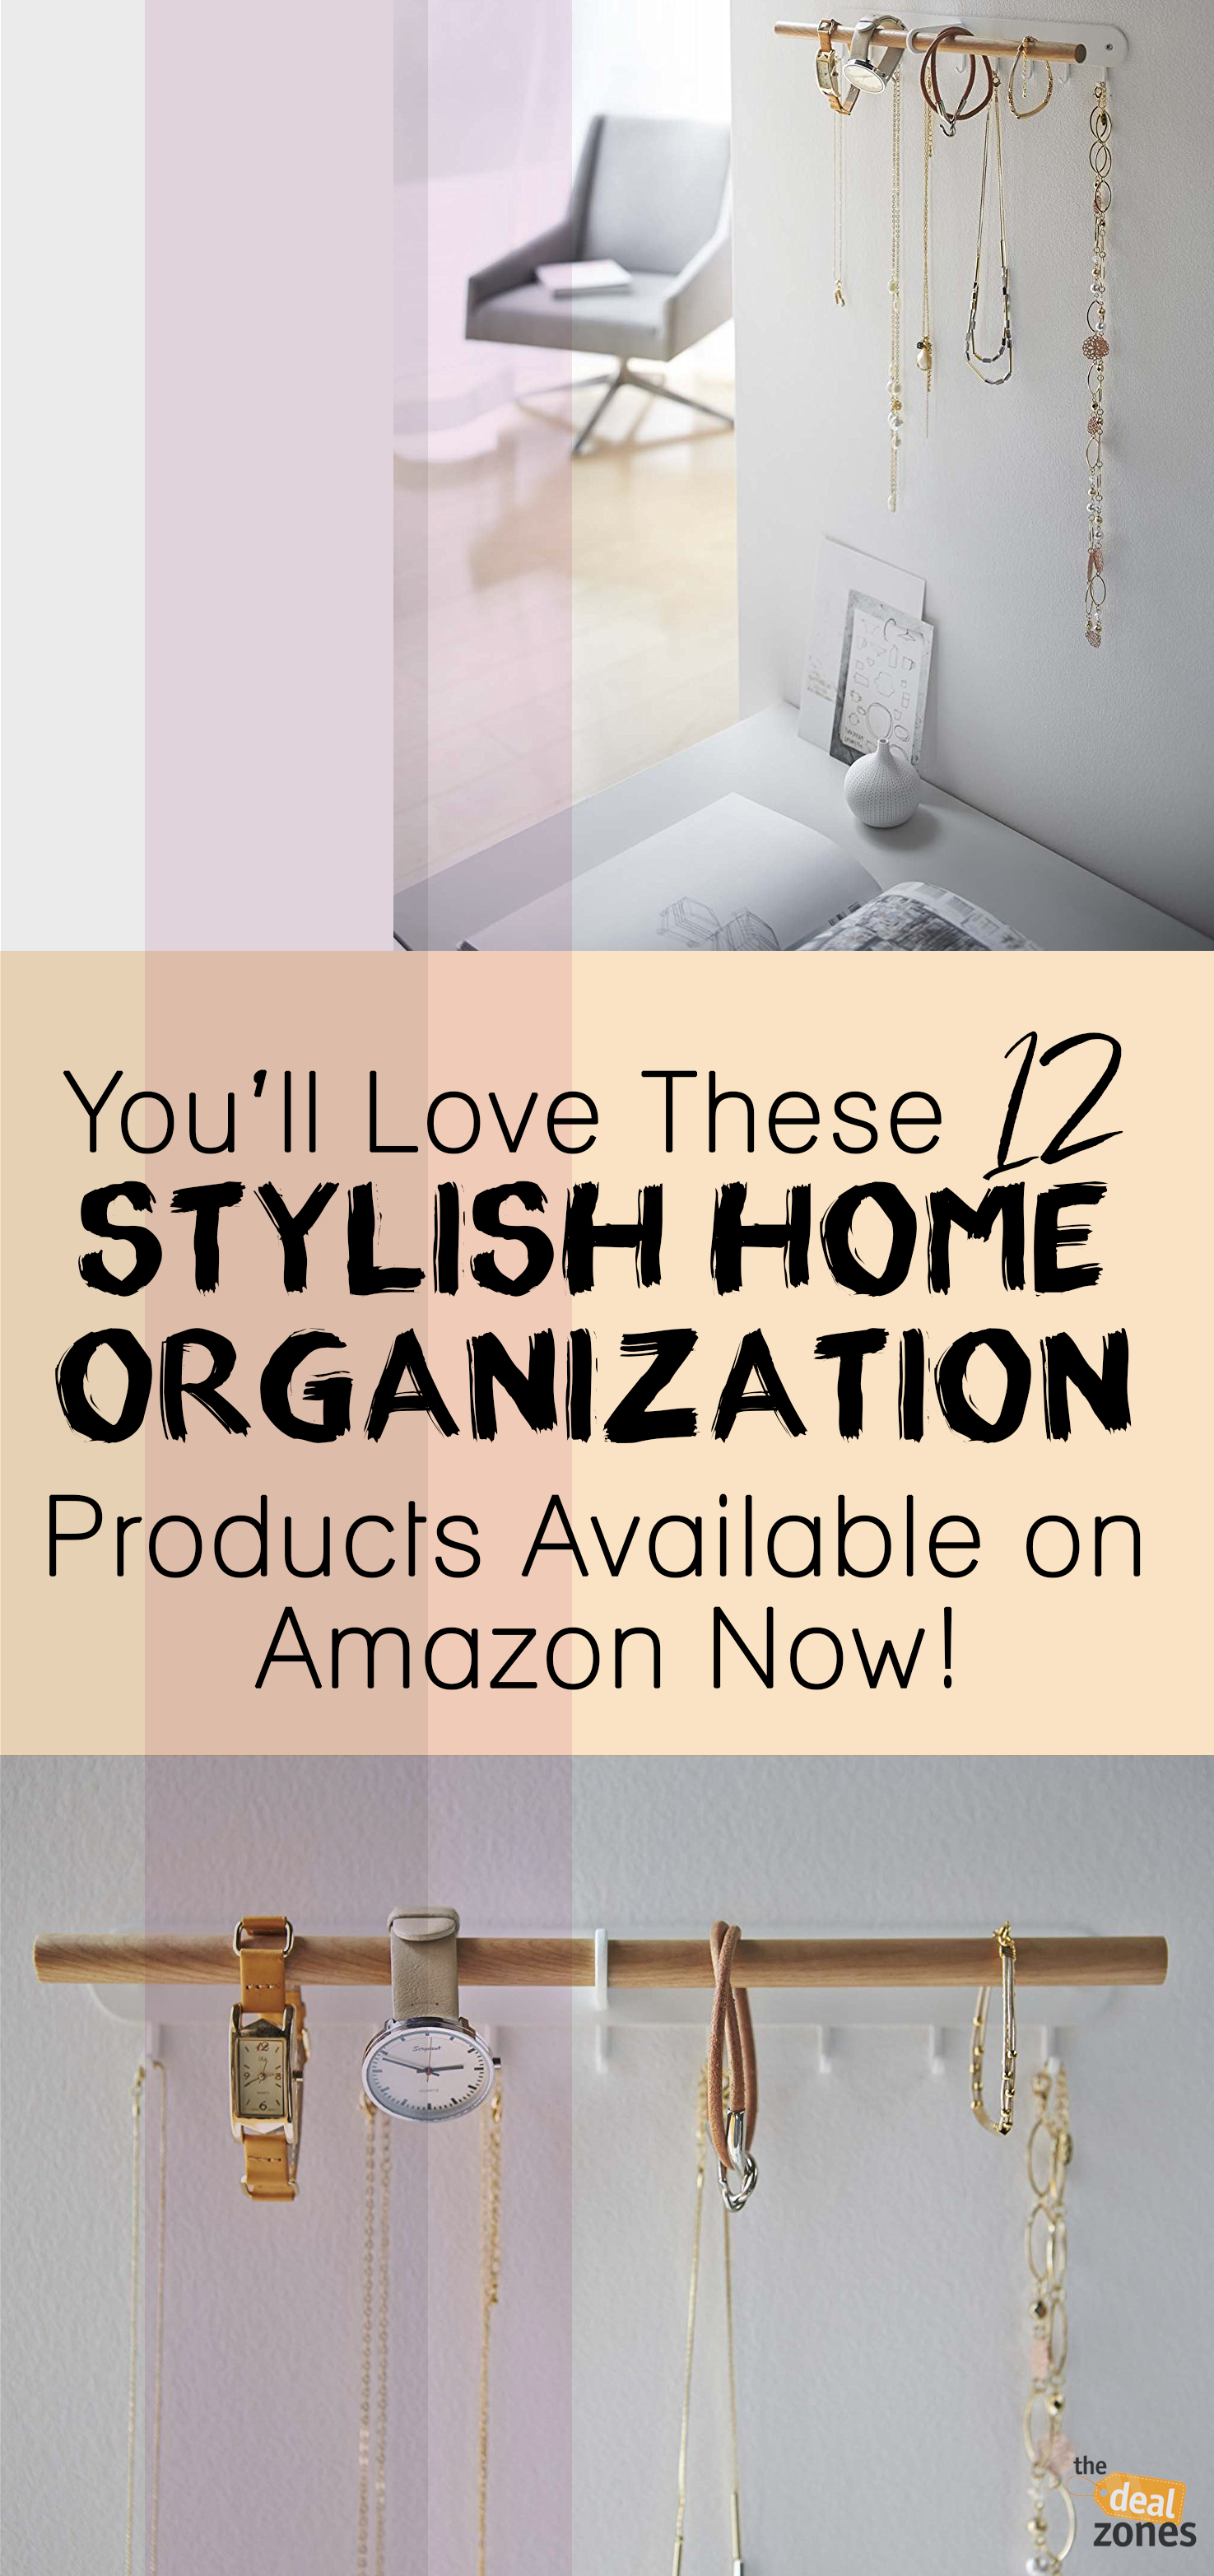 ffe9e144440 You ll Love These 12 Stylish Home Organization Products Available on Amazon  Now!